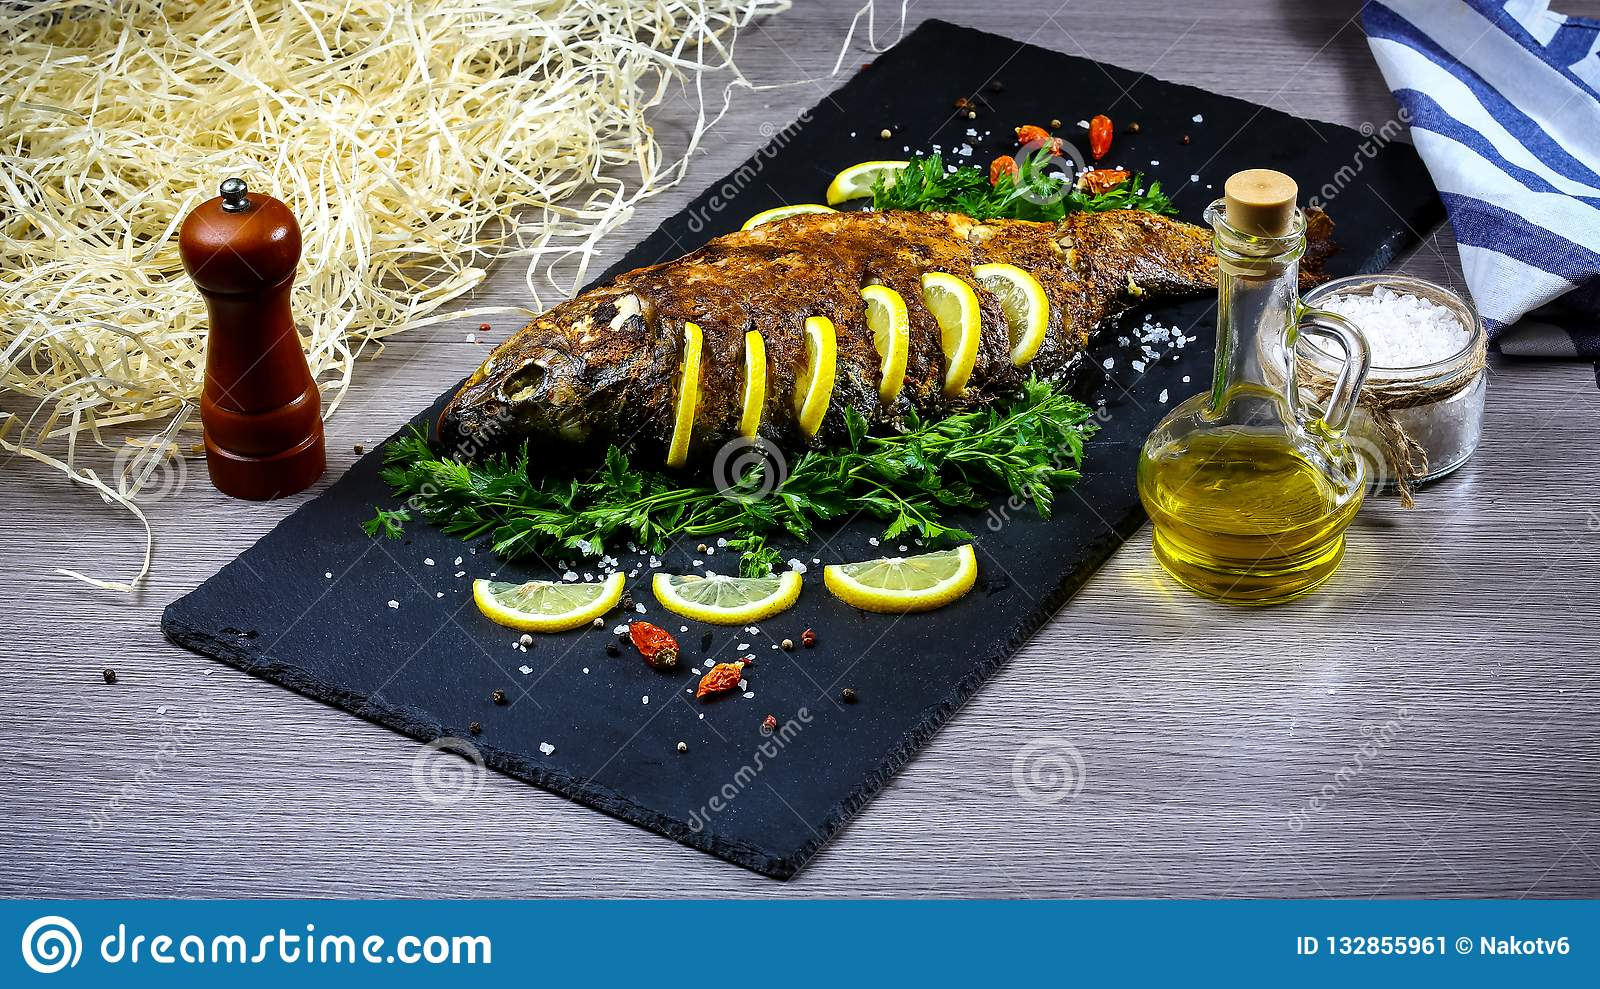 Grilled river fish on a plate with lemon and baked vegetables and parsley. Food recipe photo, copy text